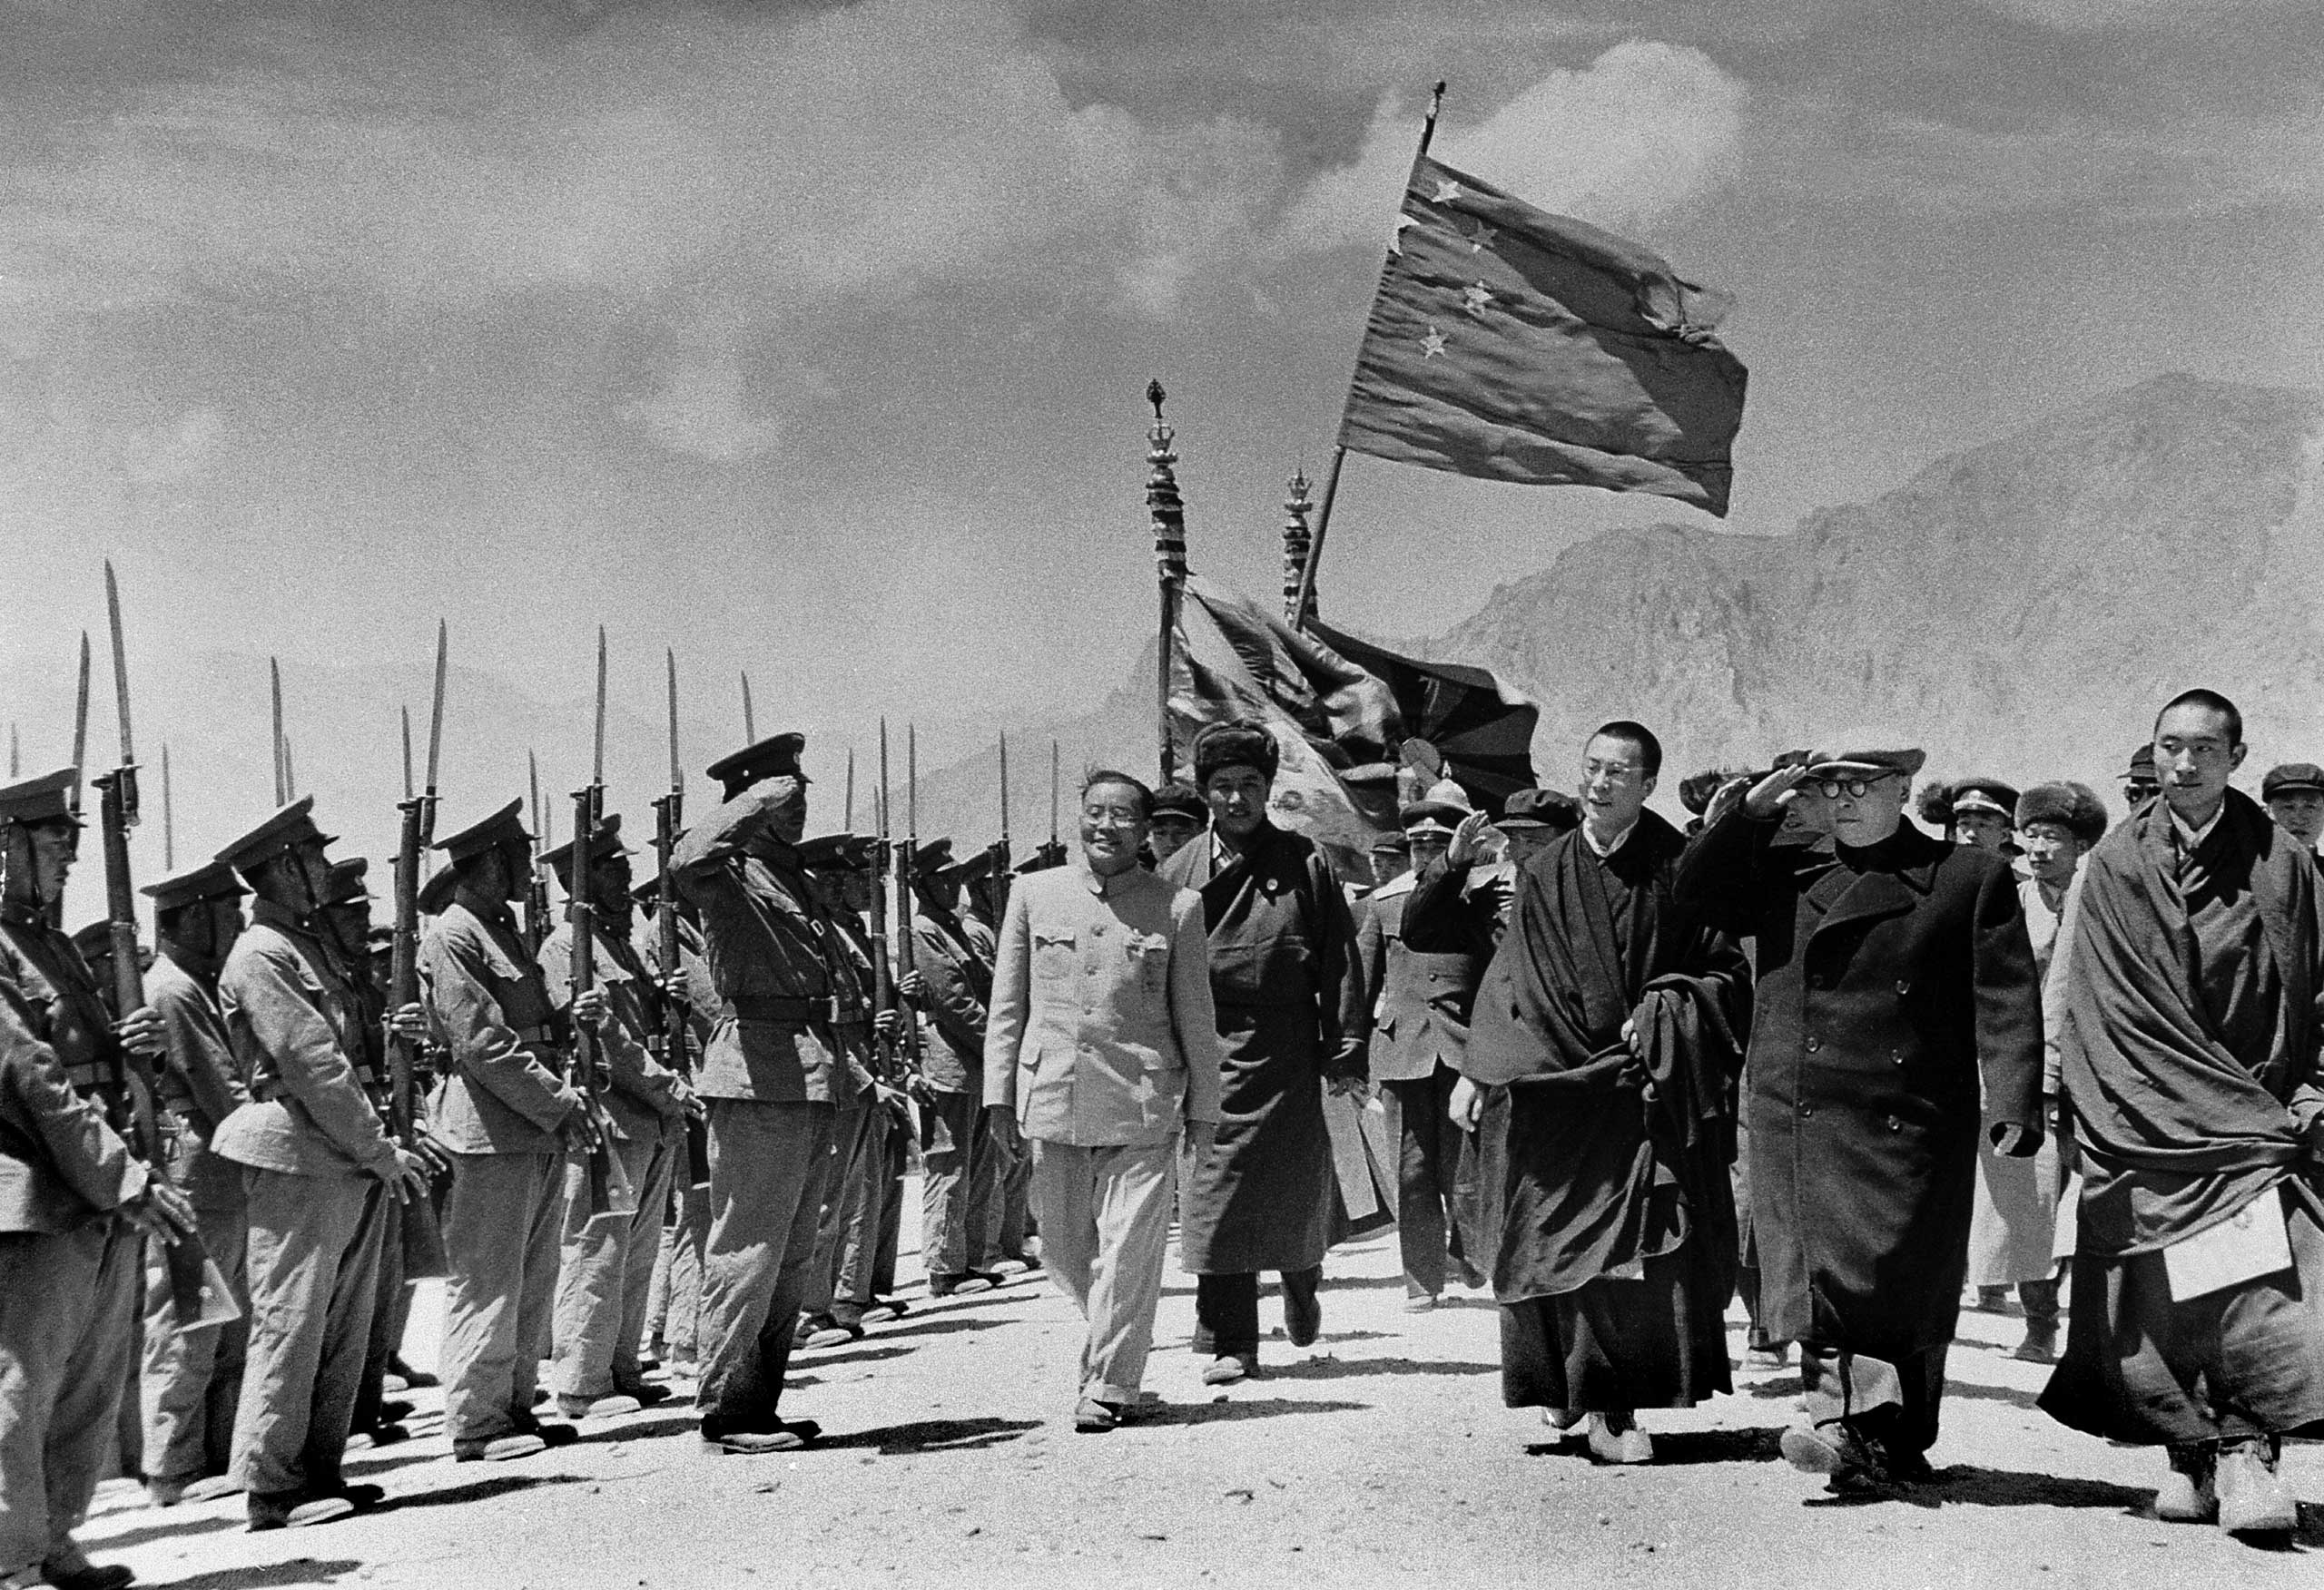 The Dalai Lama is seen with members of a Chinese government delegation on their official visit to Tibet in 1956.